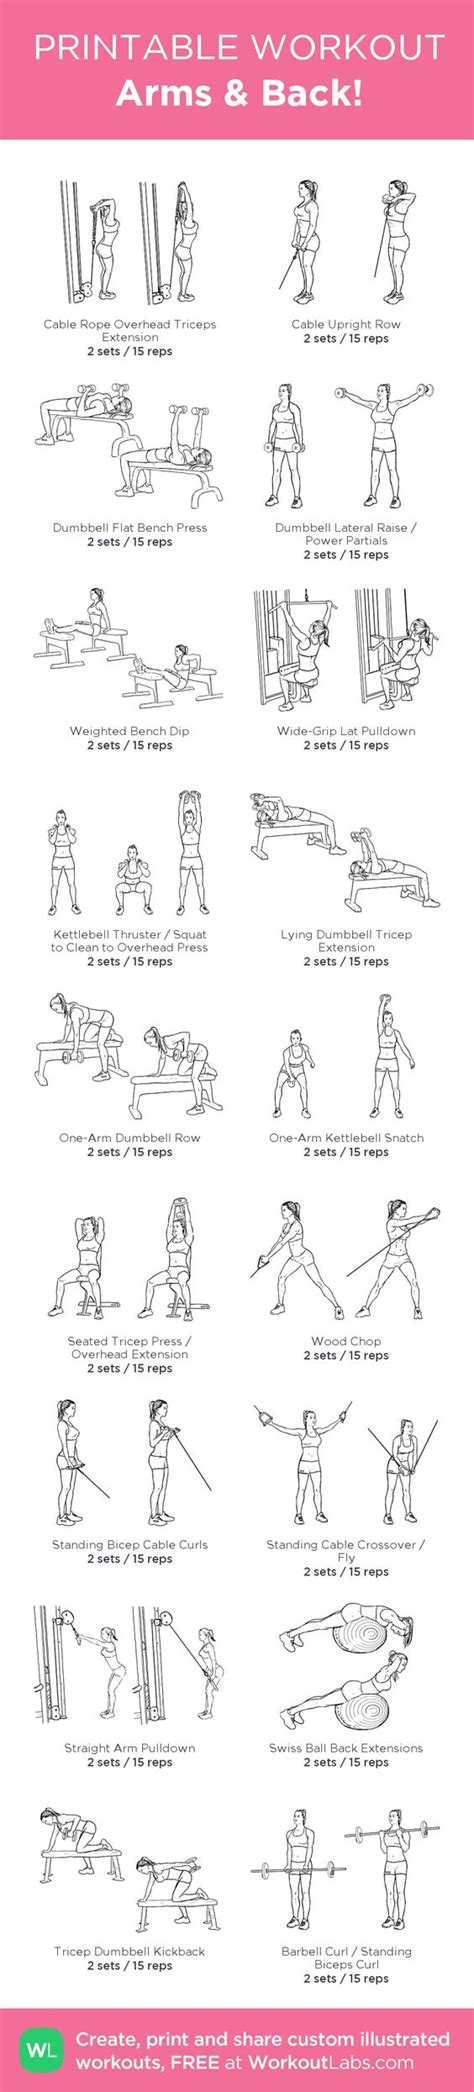 printable workout plan for gym arms back my custom workout created at workoutlabs